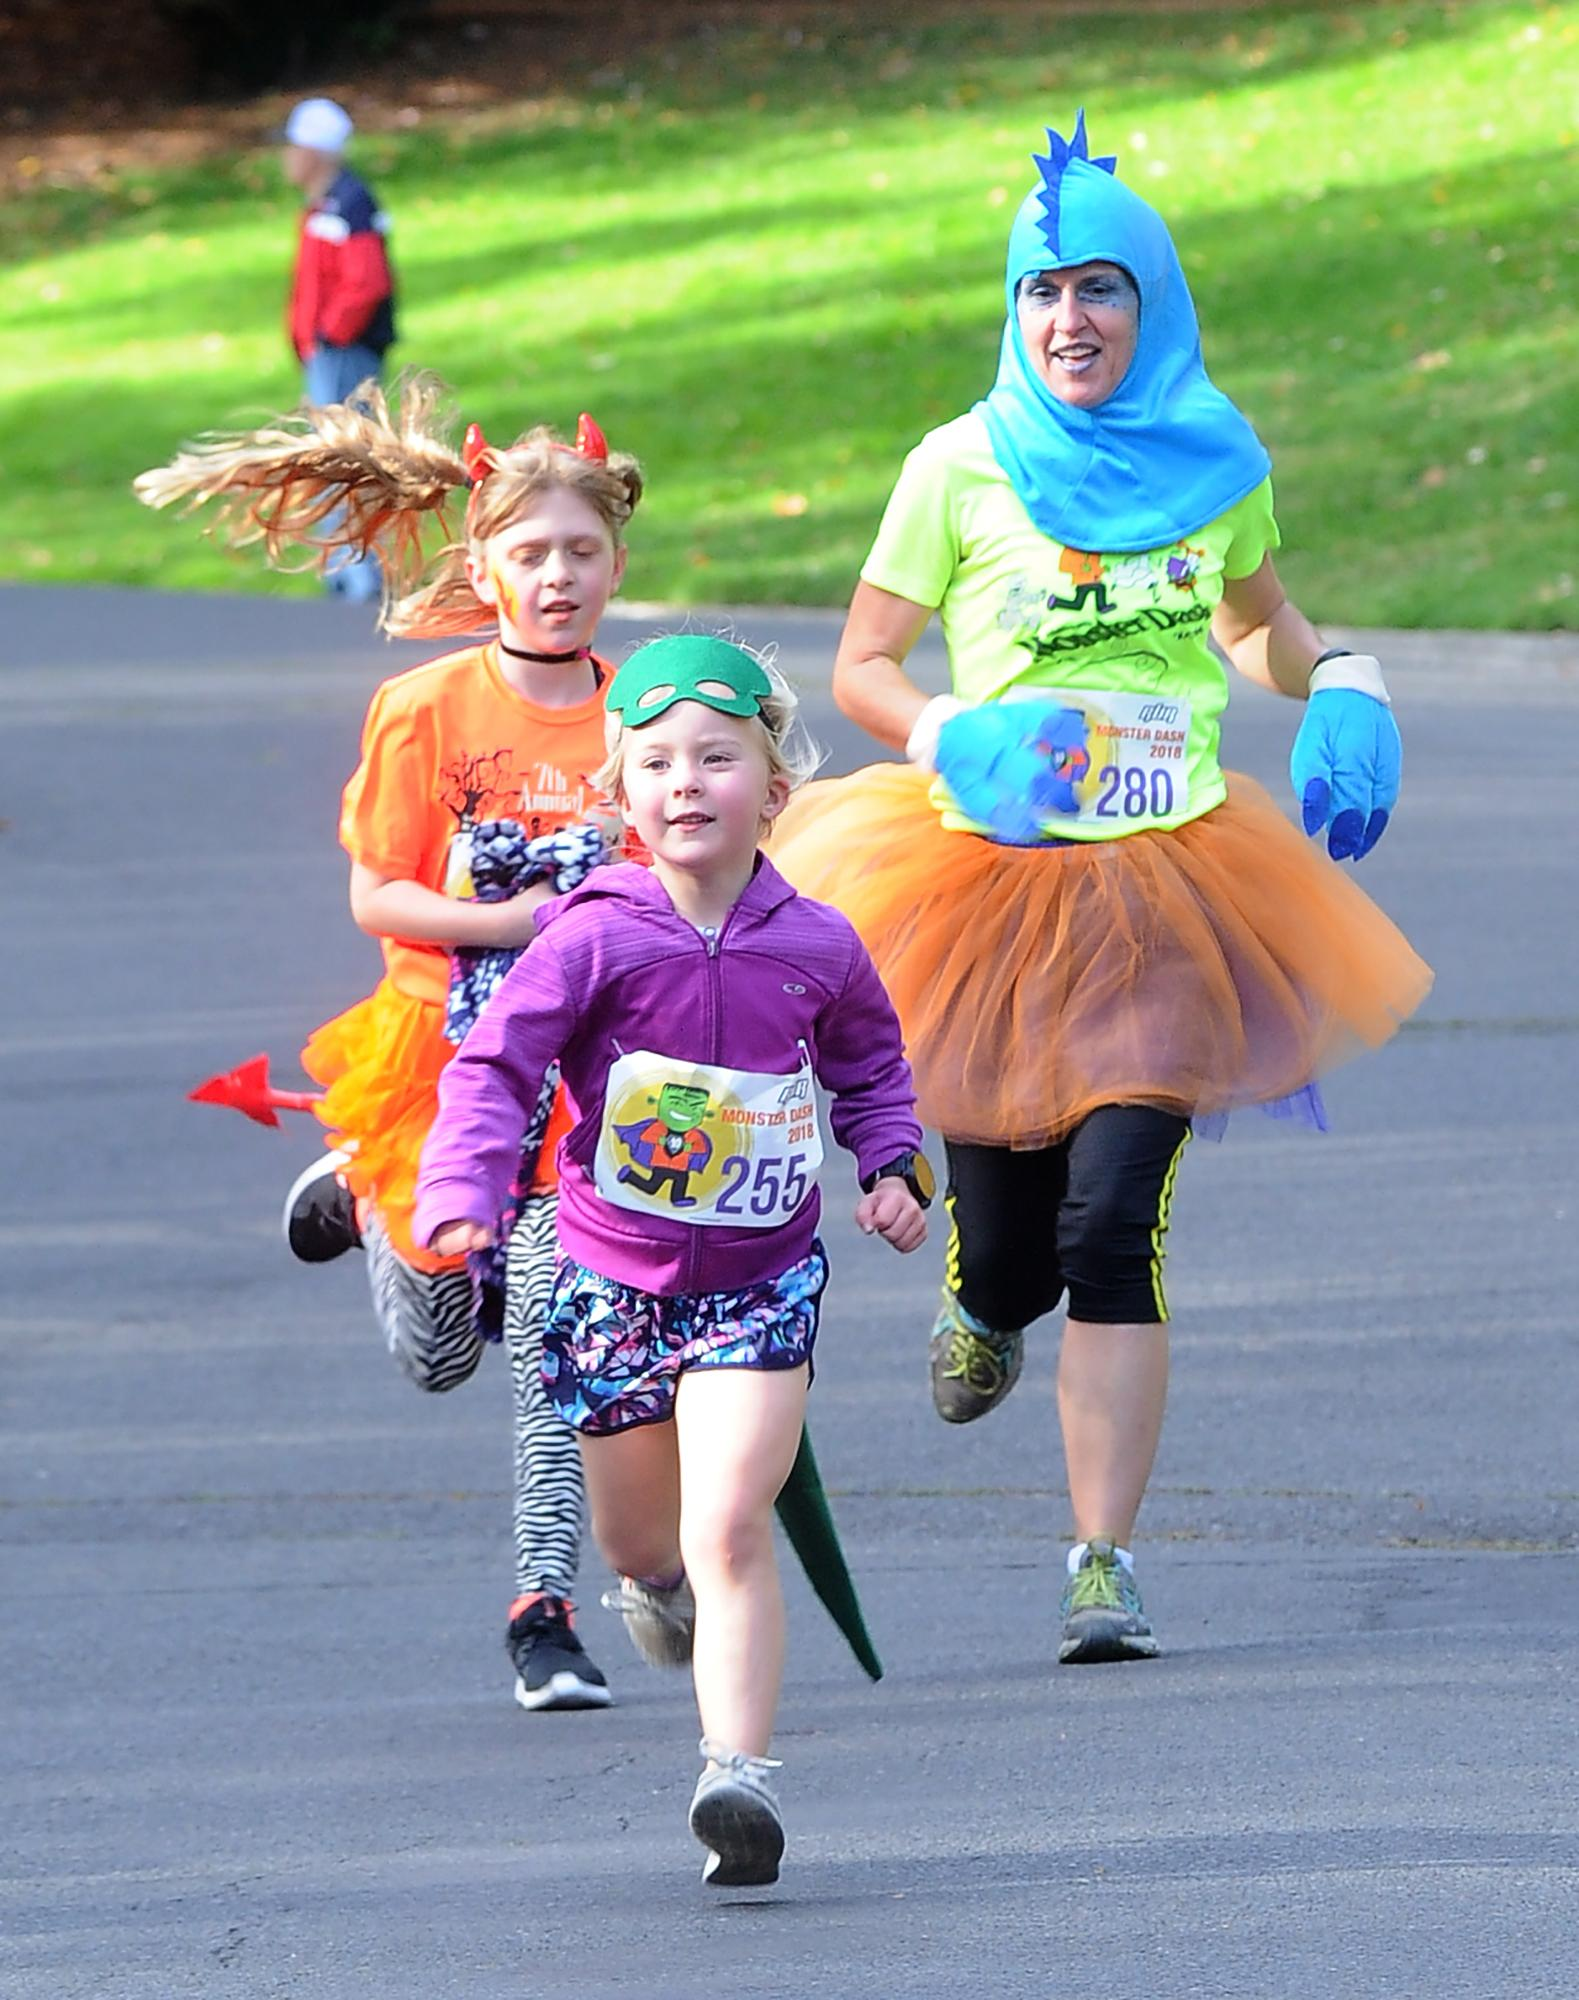 Evelyn McQuown, 5, of Chicago (front) makes her way to the finish line in front of Mia Pickerel, 11, and Venessa Pickerel, both of Ashland, in Saturday's Monster Dash in Lithia Park. Photo by Denise Baratta